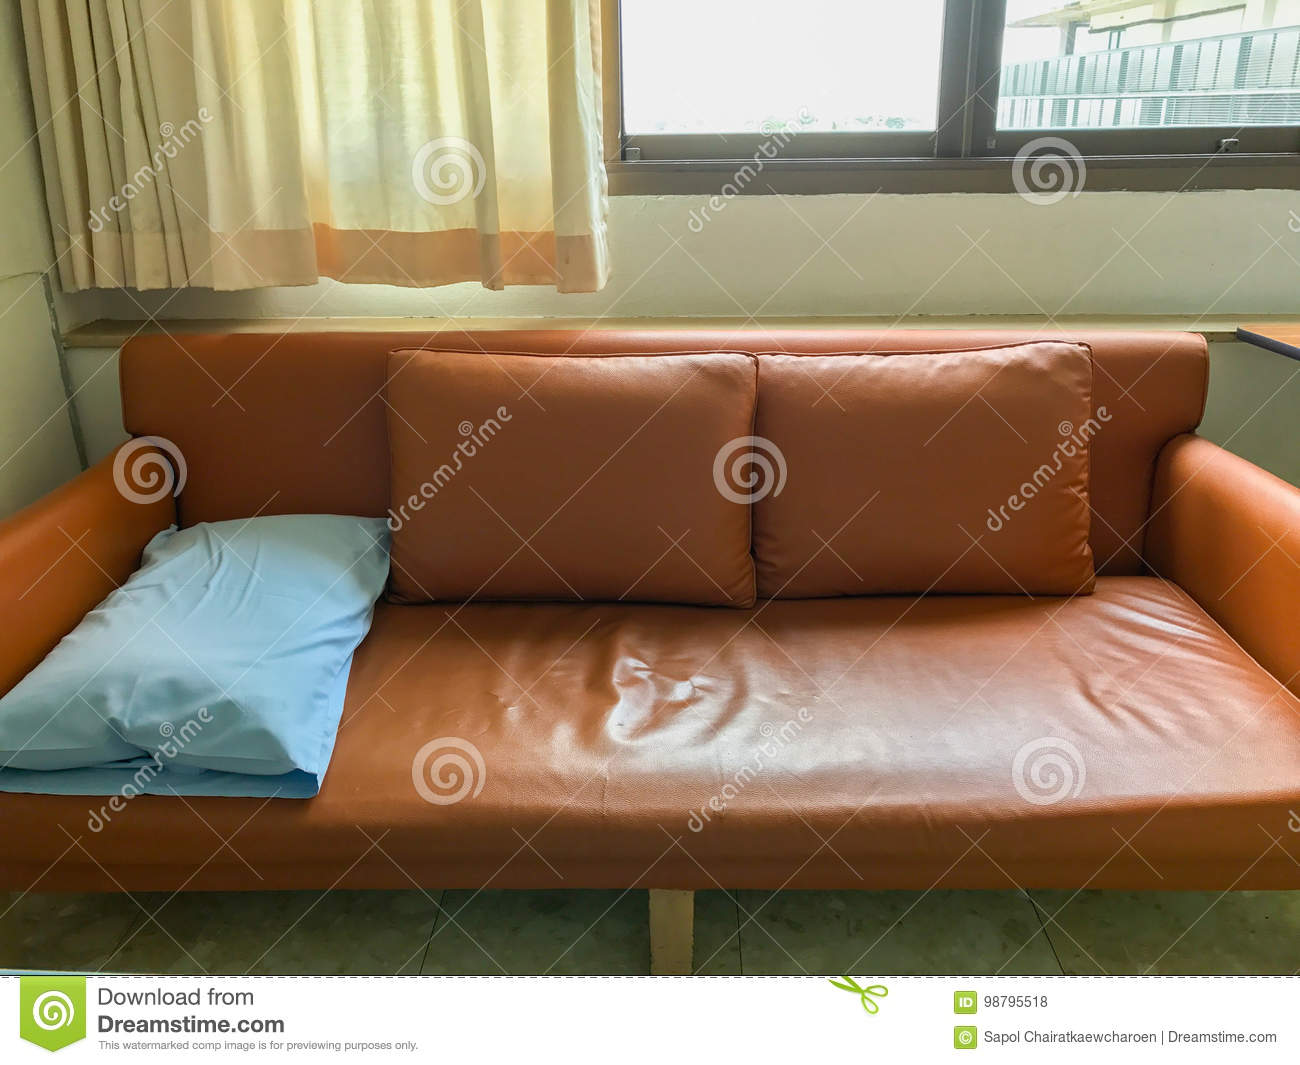 Outstanding One Light Blue Sofa Pillow And Two Orange Pillow On Sofa In Andrewgaddart Wooden Chair Designs For Living Room Andrewgaddartcom